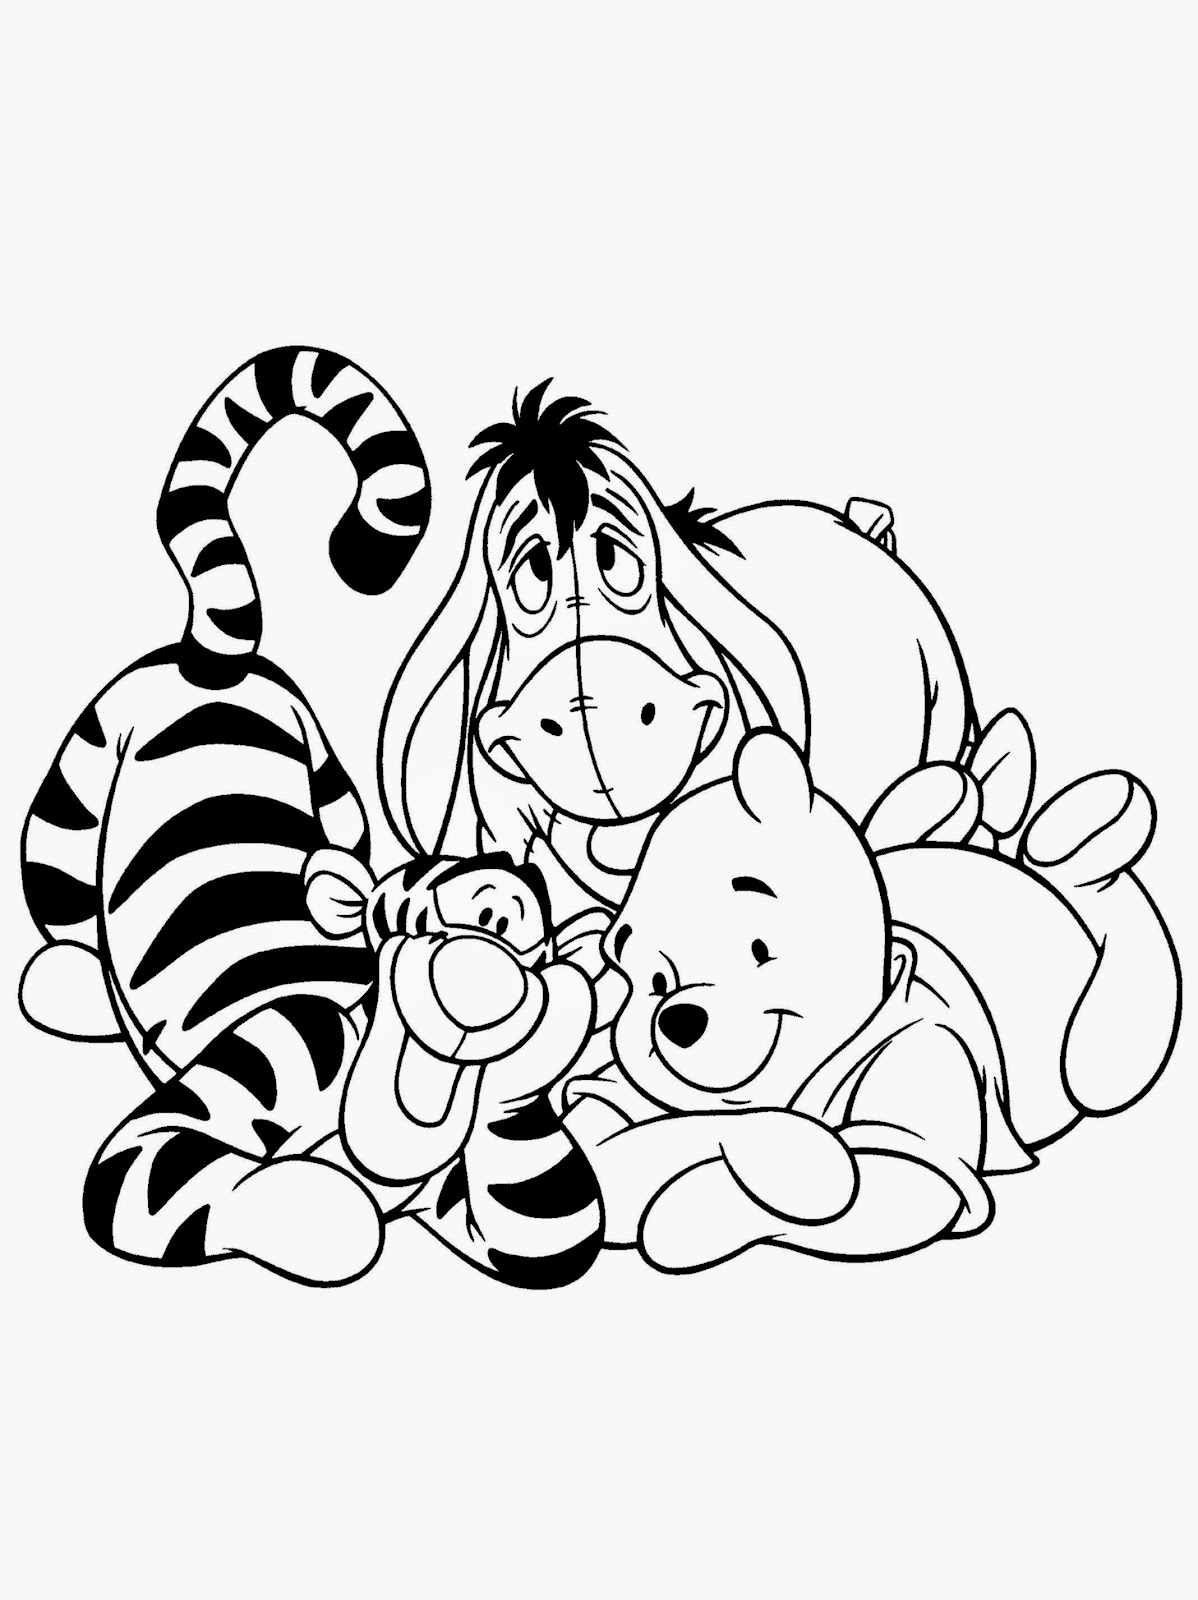 Winnie The Pooh Coloring Sheets Free Coloring Sheet